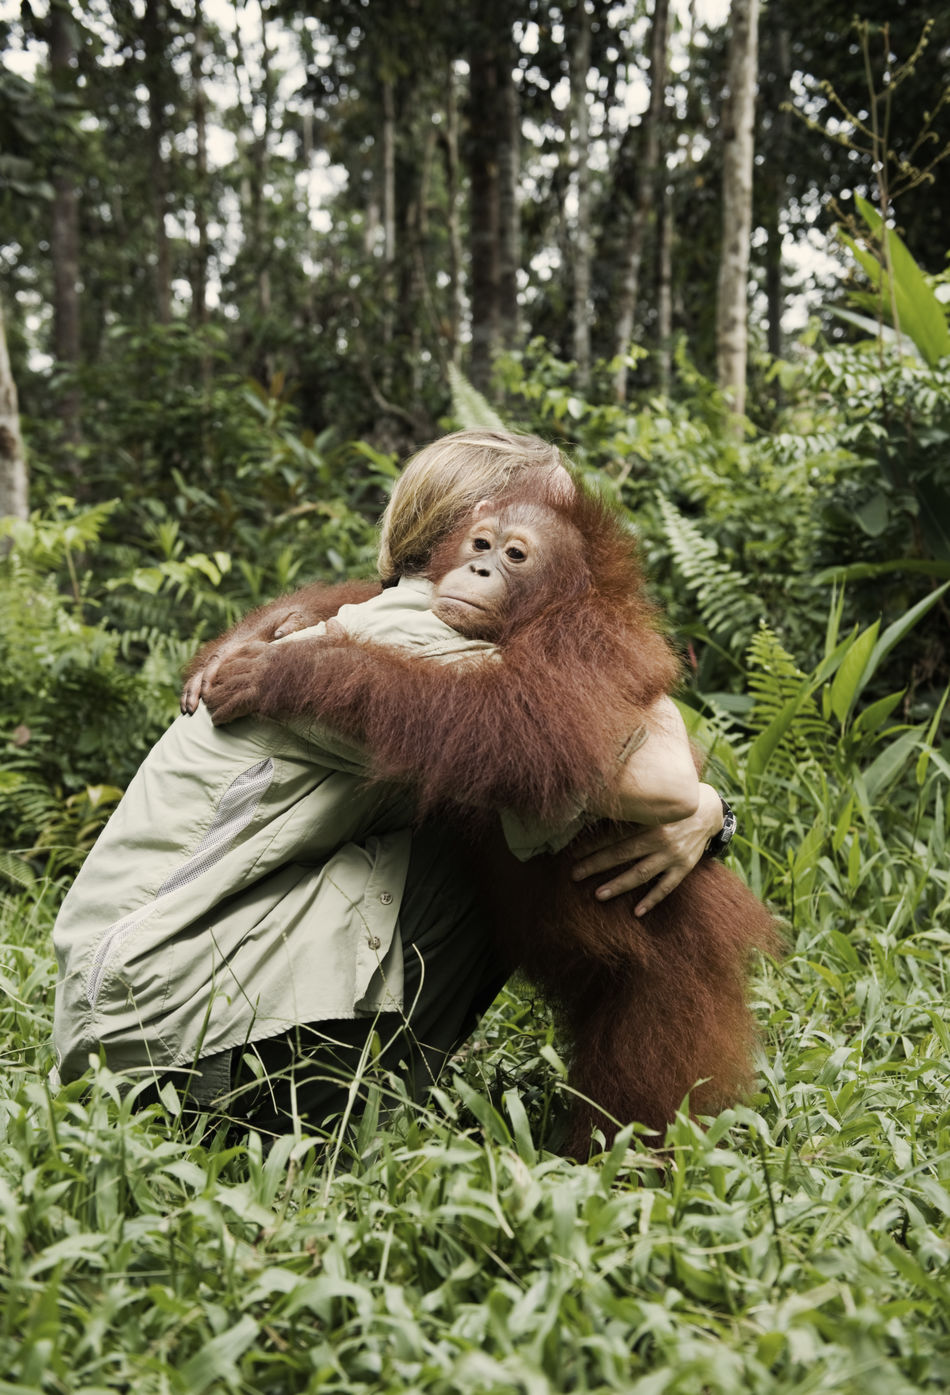 Lone Drocher Nielsen, a Danish wildlife conservationist who established the Nyaru Menteng Orangutan Reintroduction Project on Borneo, comforting an orphan orangutan. The project is the world's largest primate rescue operation, caring for more than 650 orangutans. The majority of them rescued from the palm-oil plantations that destroyed their forest habitat. Orangutans share approximately 97 percent of their DNA with humans, making them among our closest cousins. Capture The Moment Animals Animal_collection Orangutan Borneo Kalimantan Rainforest Palm Oil Environmental Conservation Wildlife Two Is Better Than One People And Places